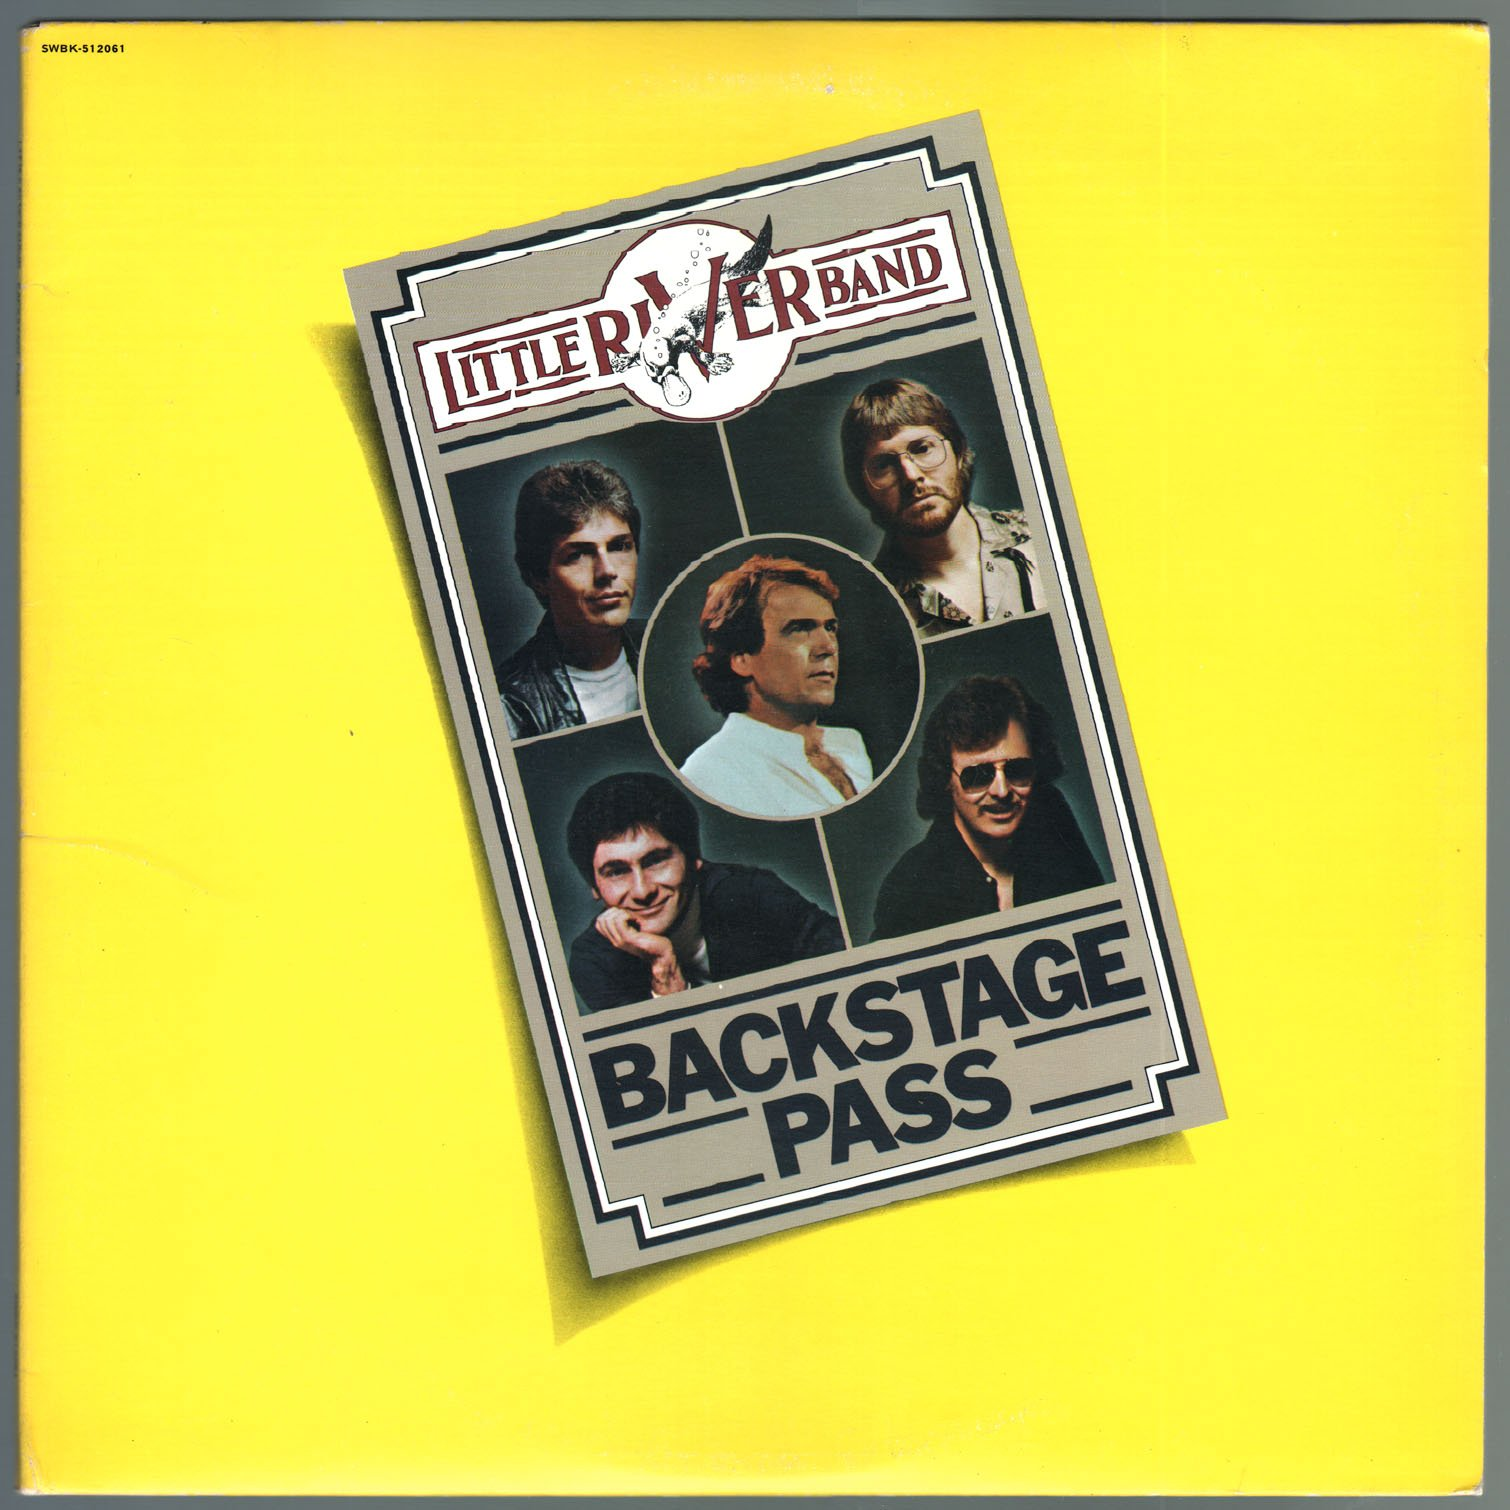 Backstage Pass (Live) by Capitol Records